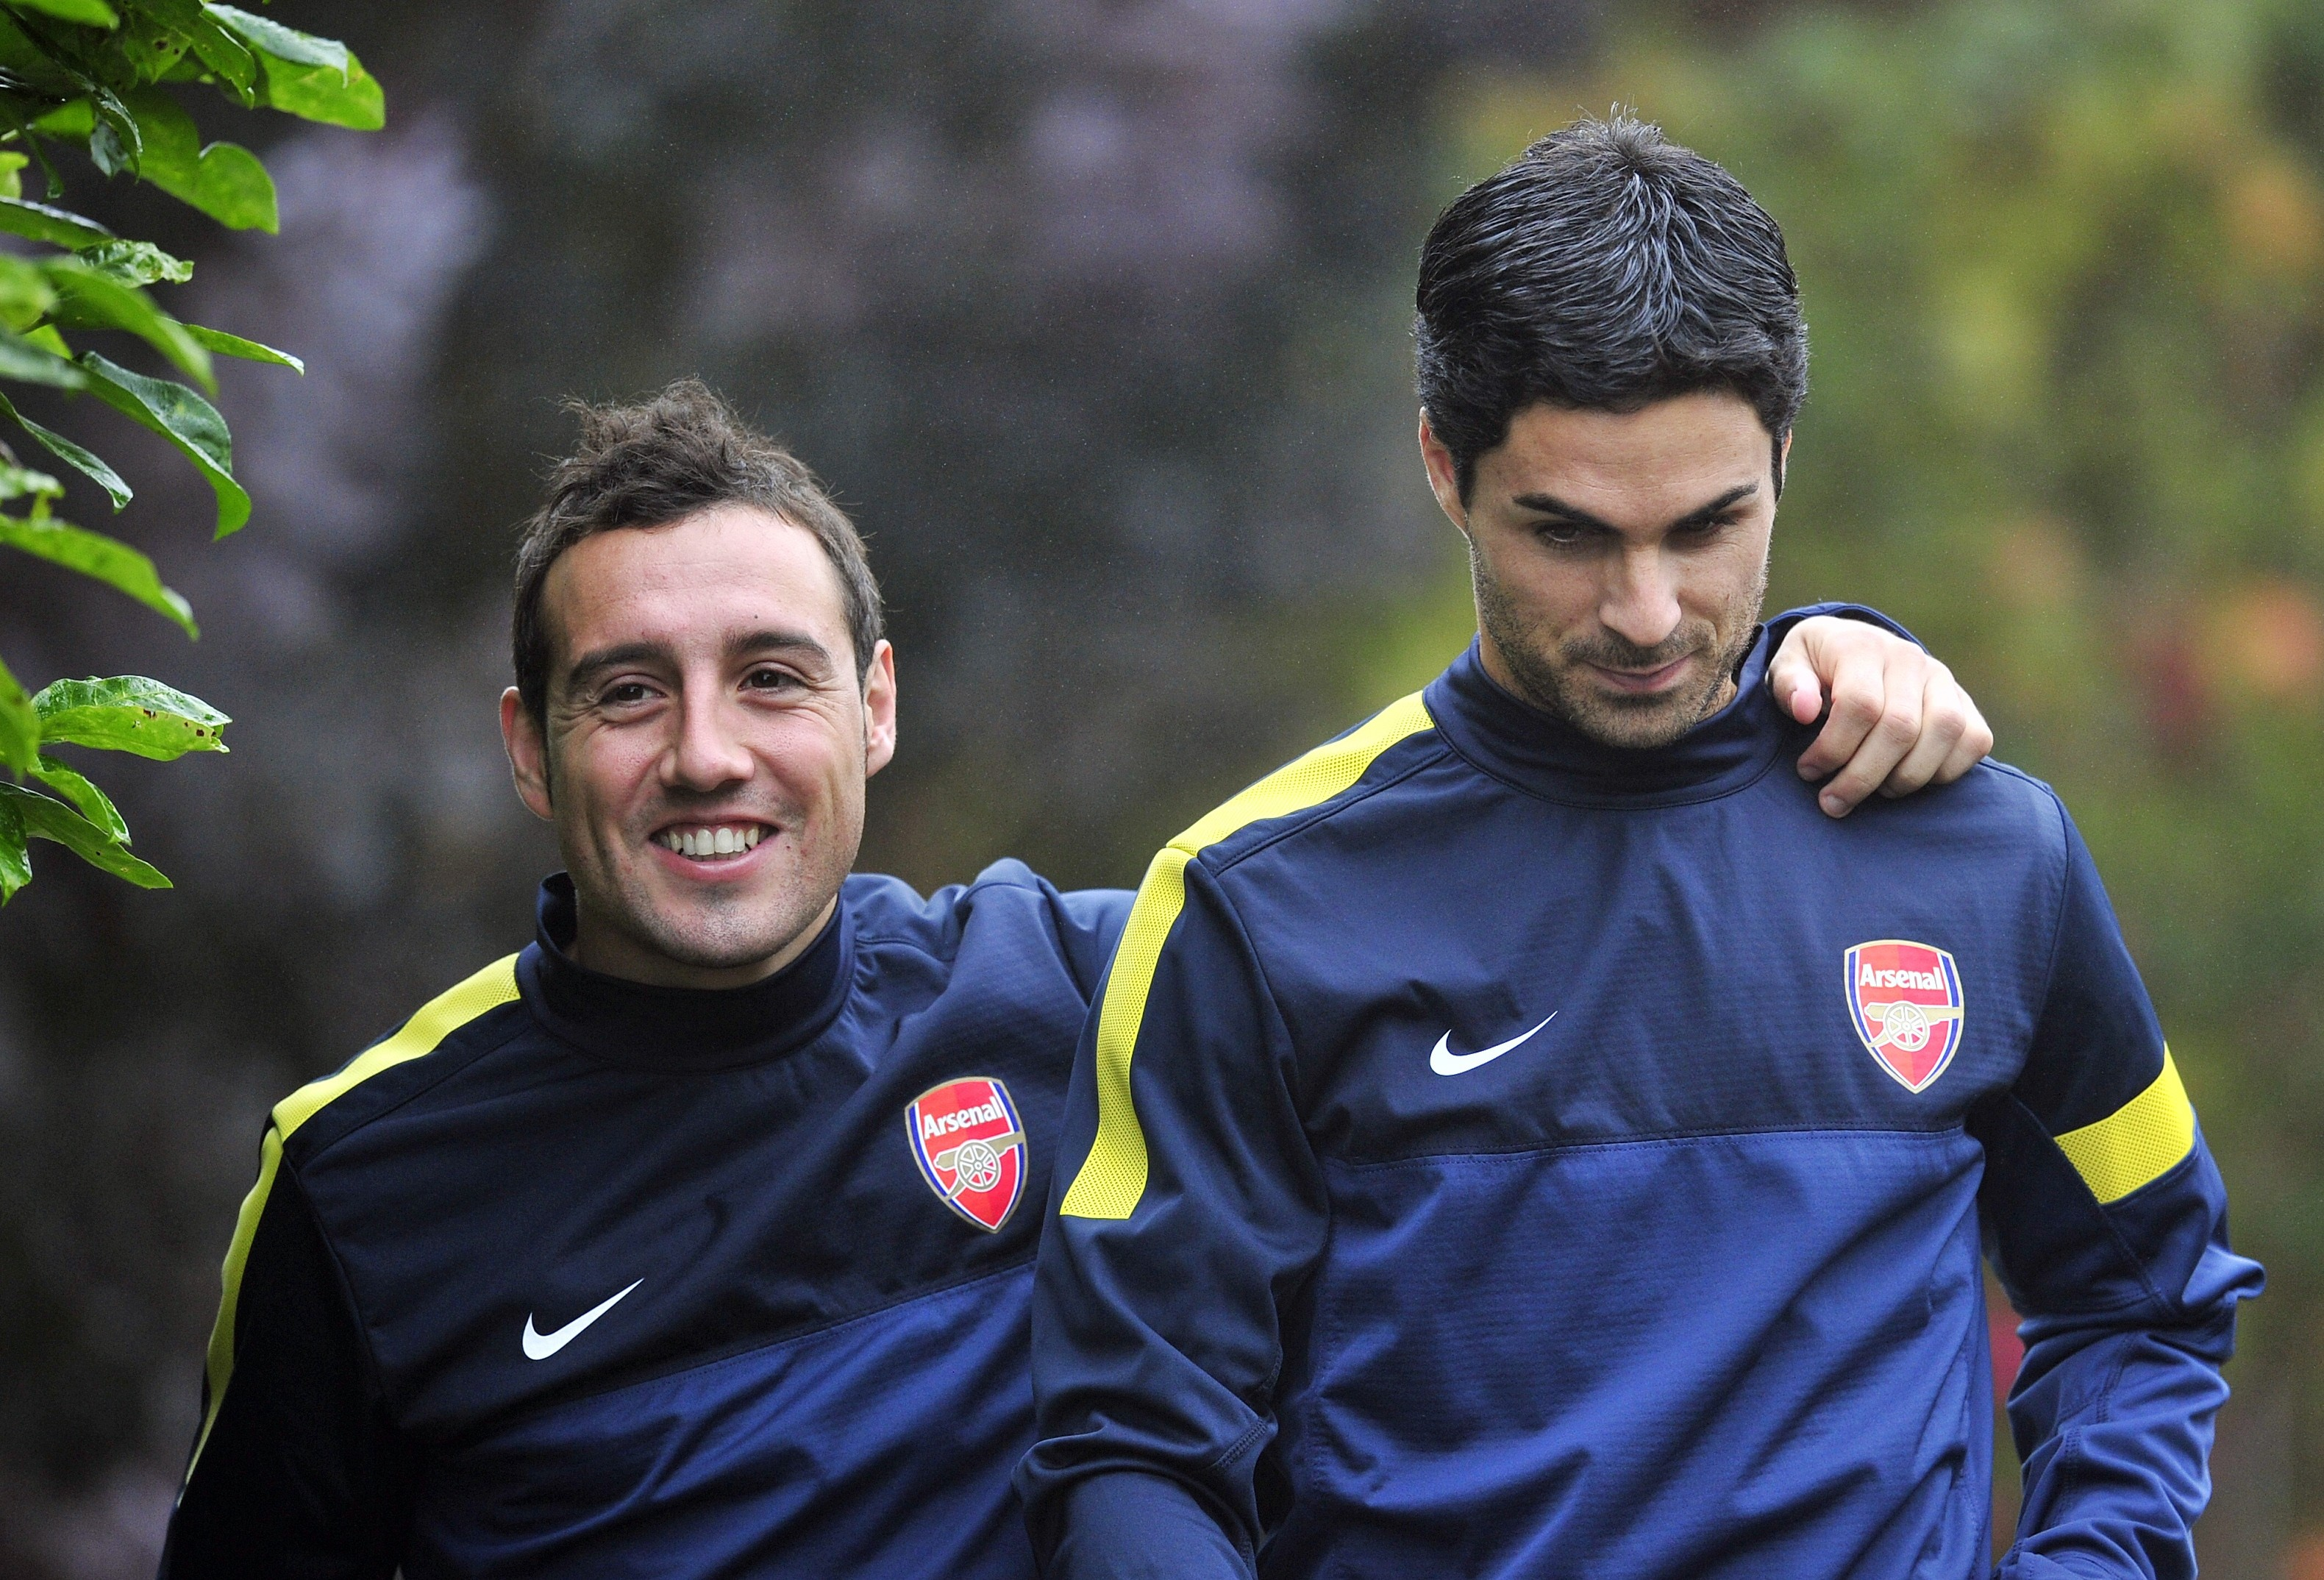 Mikel Arteta reportedly wants Santi Cazorla as part of his staff in a player-coach capacity for next season. (Photo courtesy: AFP/Getty)